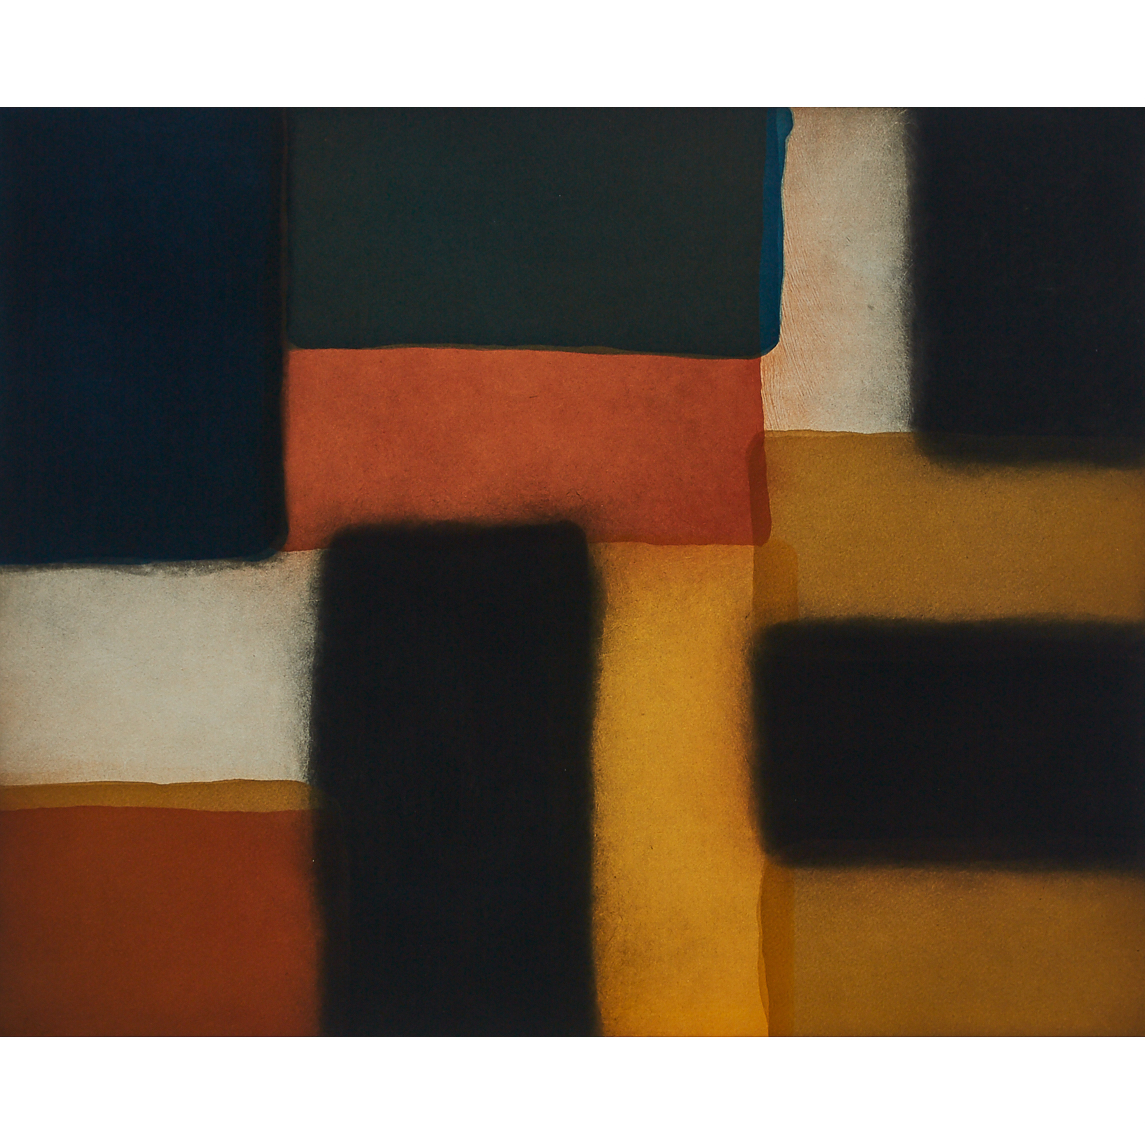 Sean Scully (1945-)